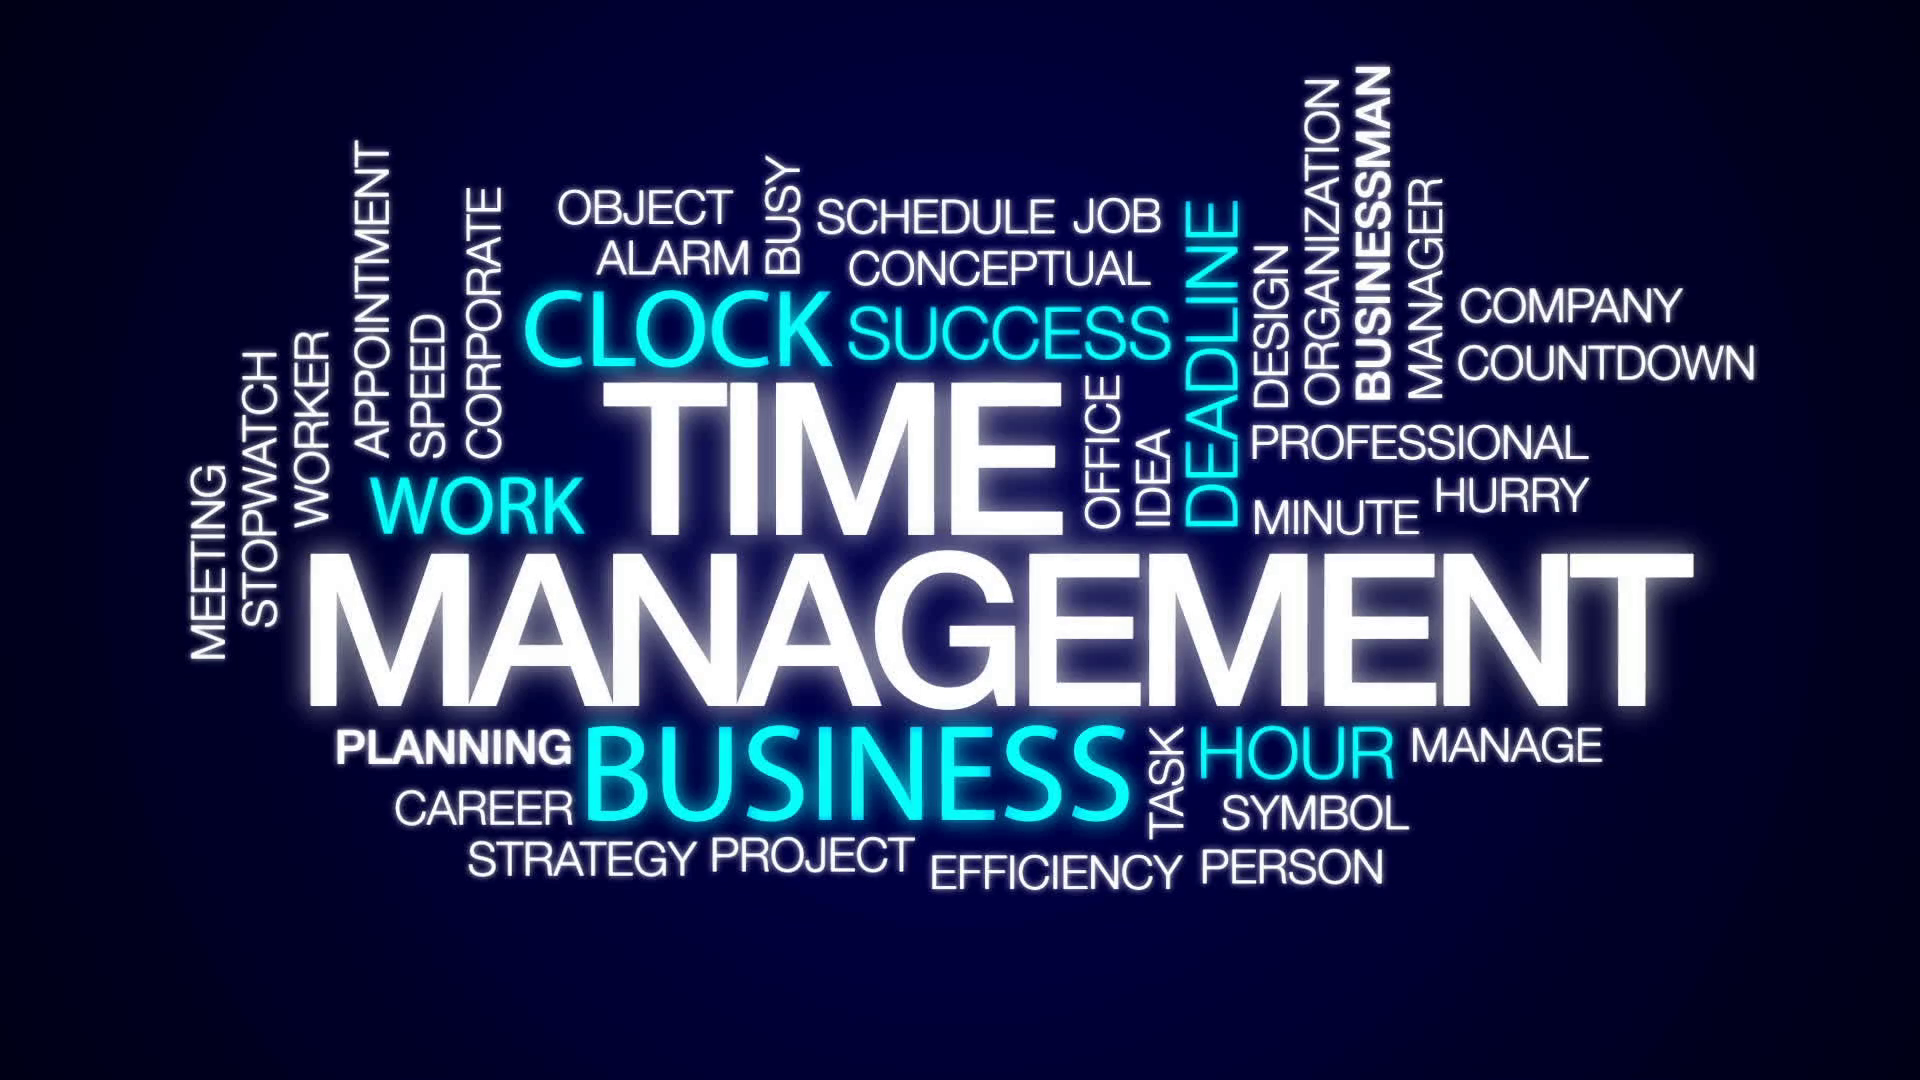 5 Tips To Effectively Manage Company Time Communal Business